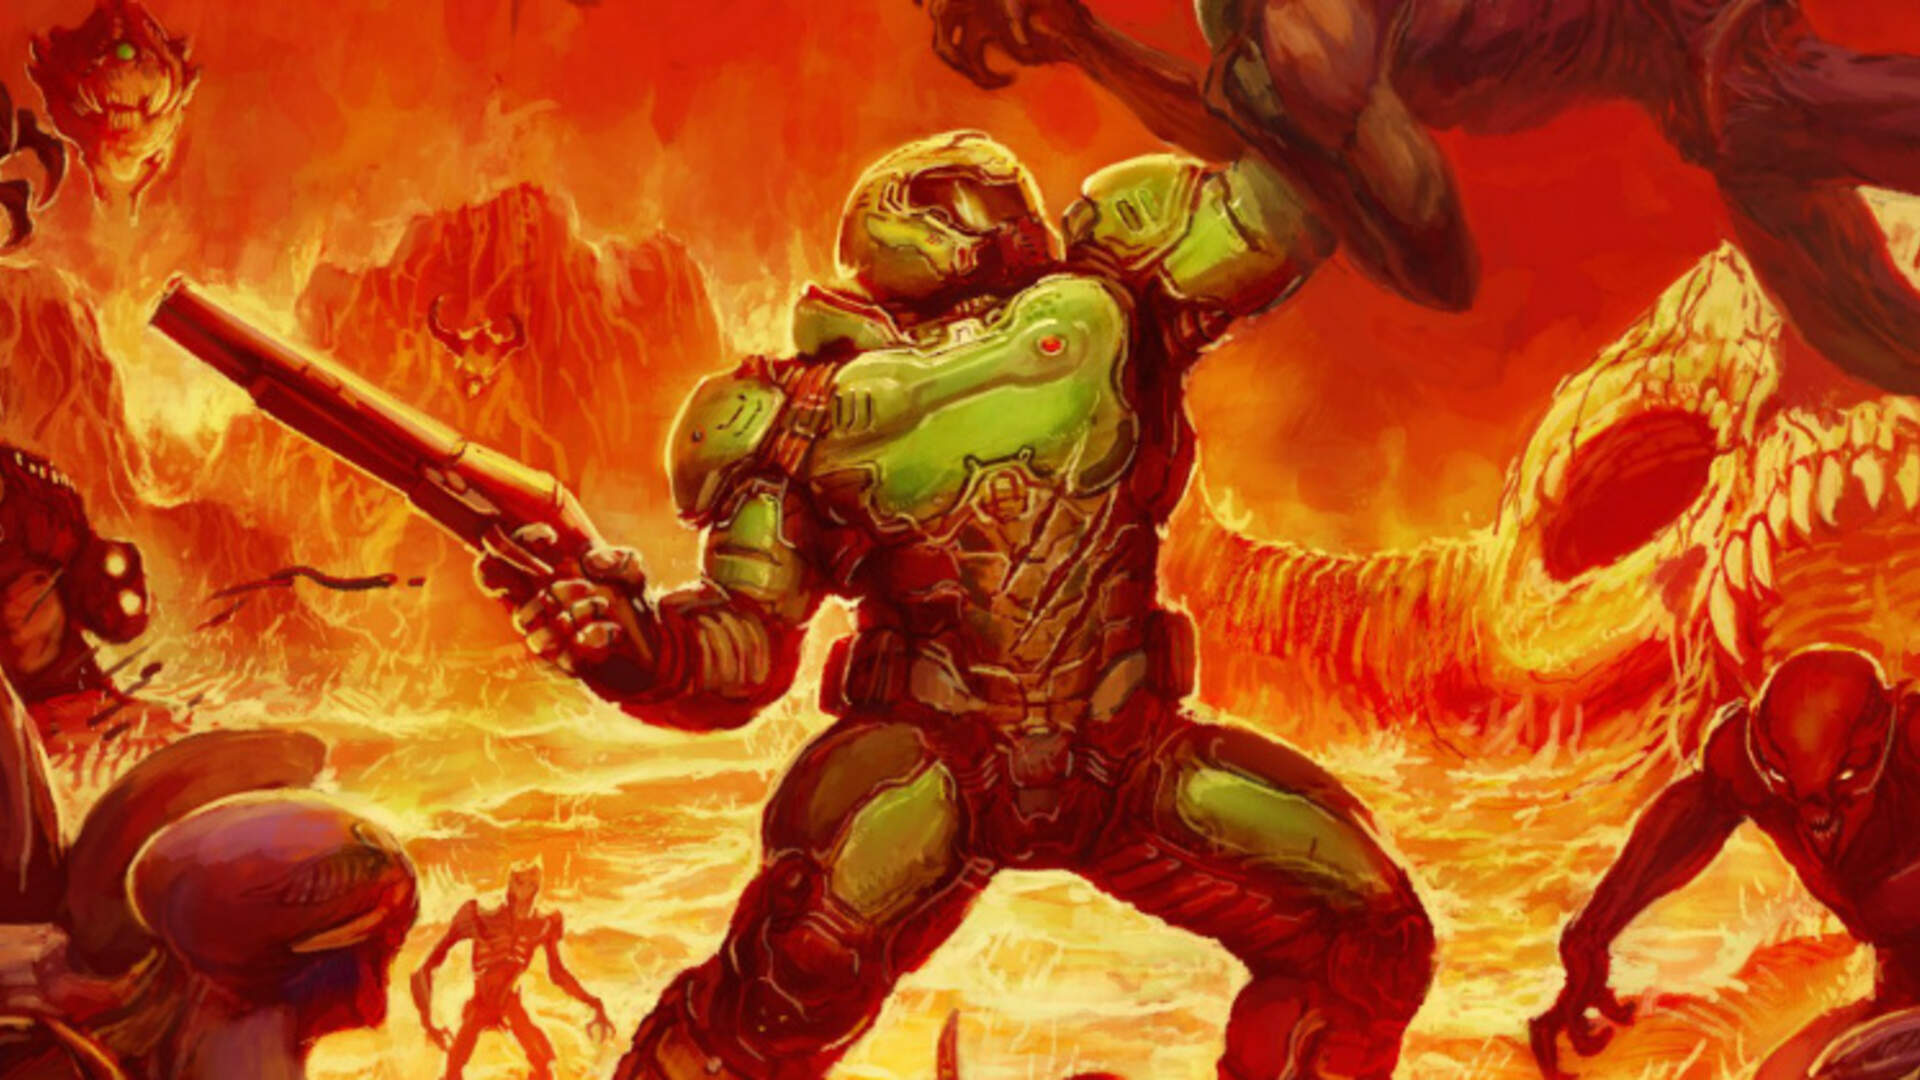 Doom is Getting Big Enhancements for Xbox One X and PS4 Pro, Here are the Details